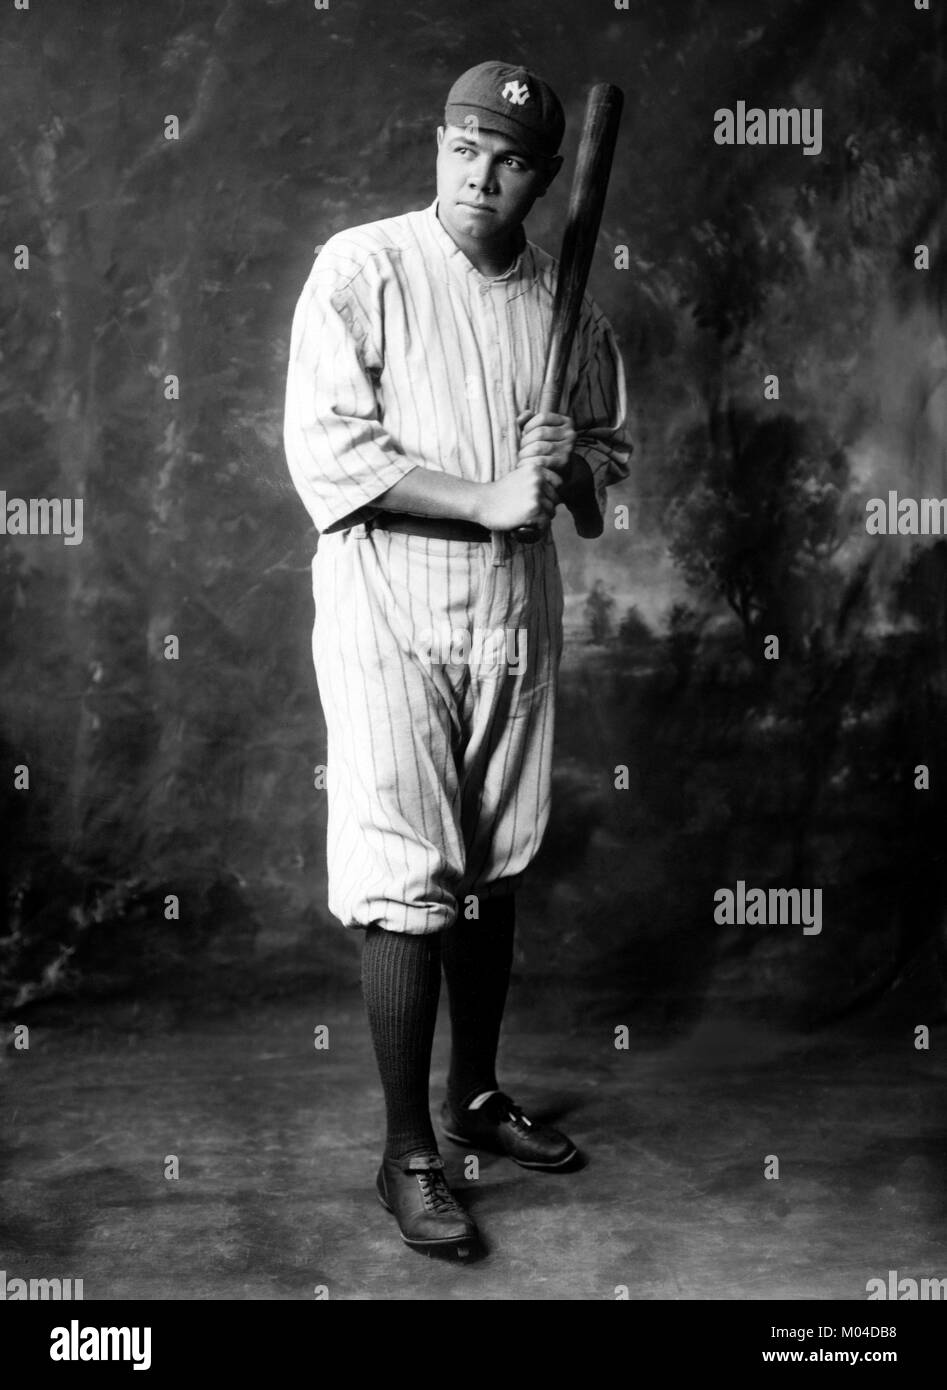 Babe Ruth. Portrait de l'actrice George Herman Ruth 'Babe' Jr (1895-1948), c.1920 Photo Stock